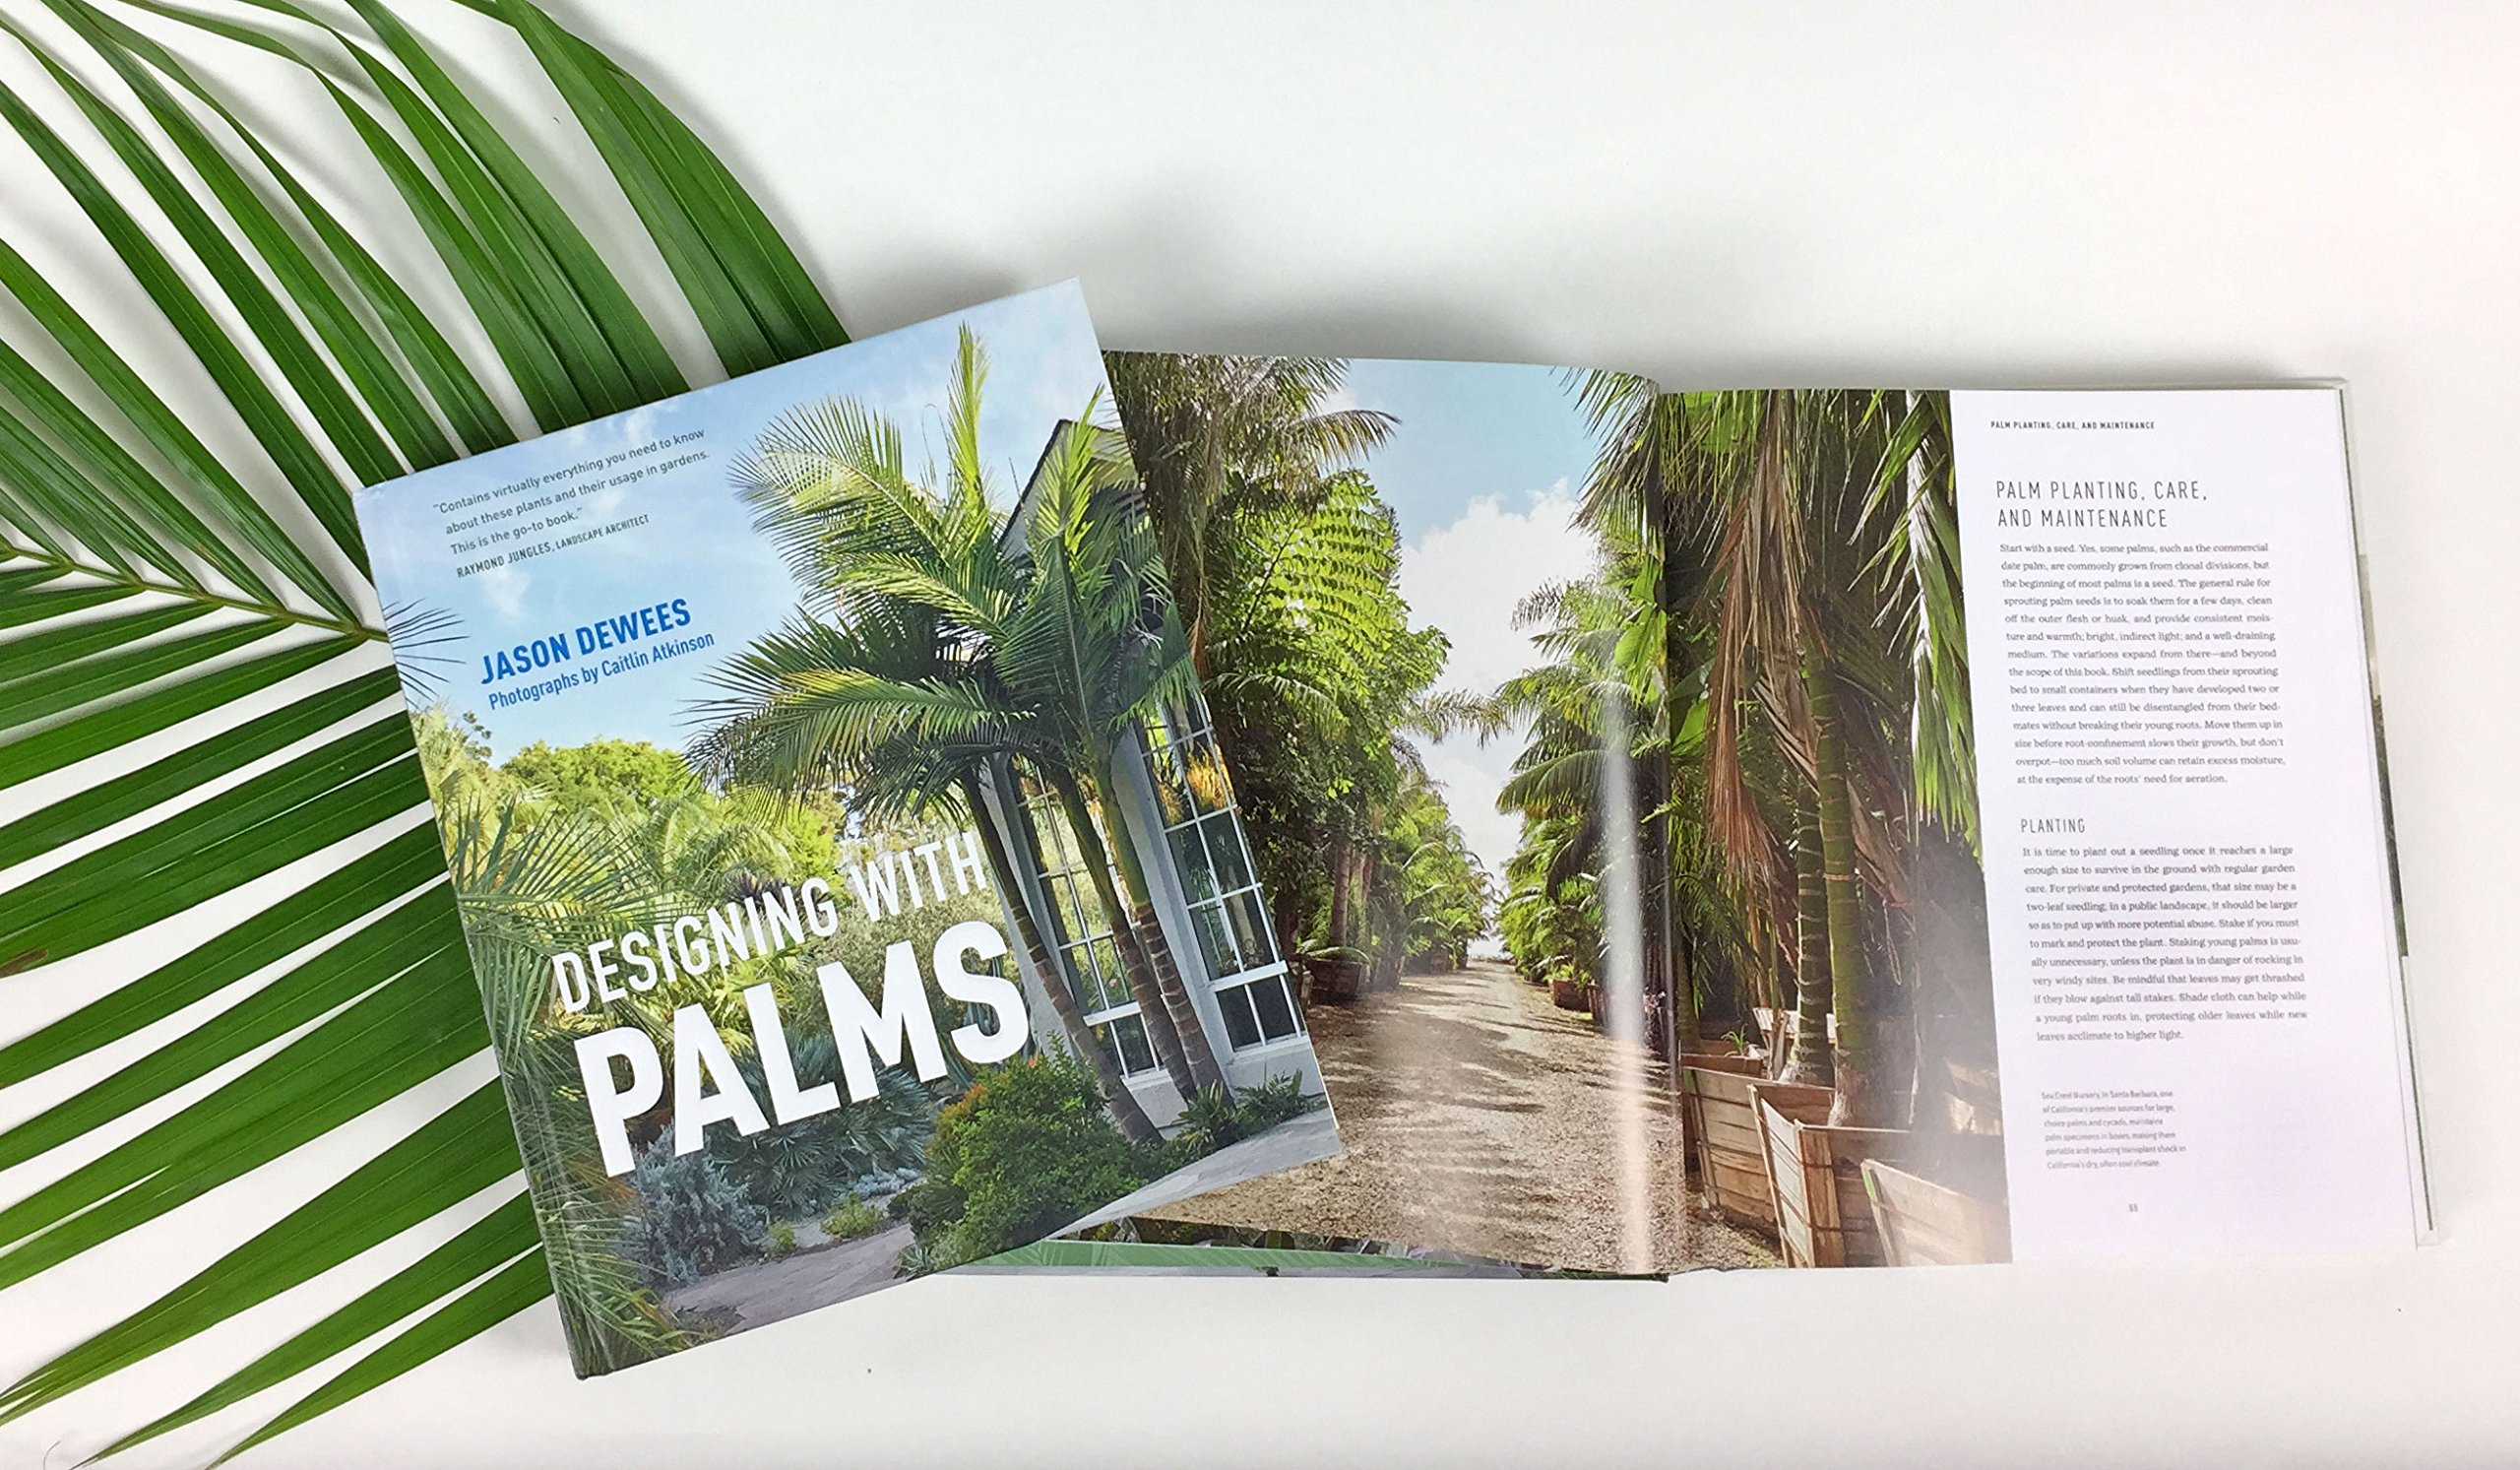 Designing with Palms by Timber Press